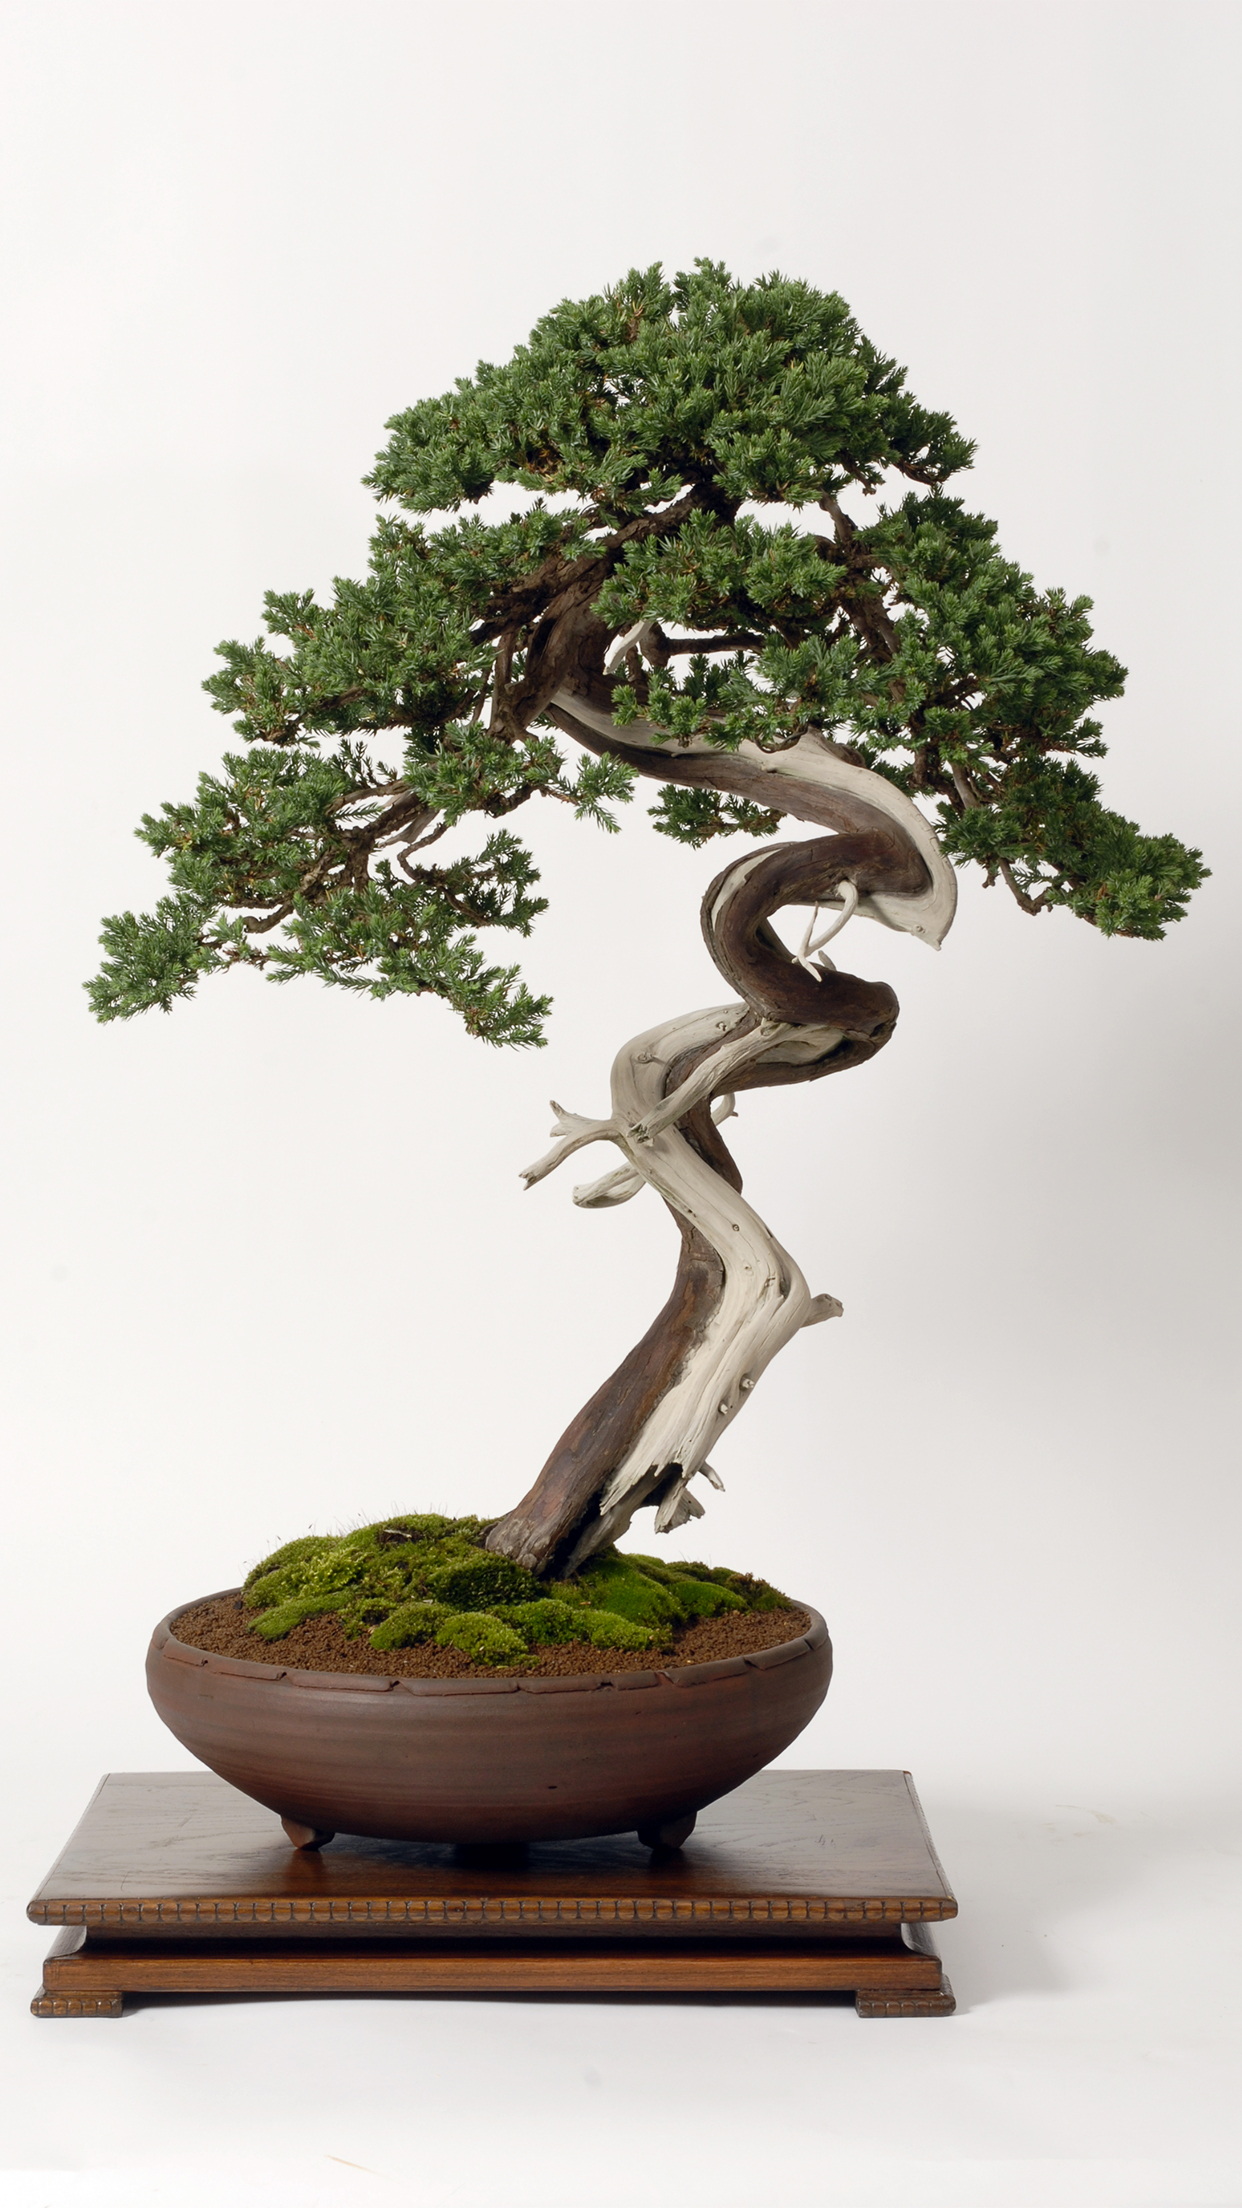 Bonsai Wallpaper : bonsai, wallpaper, Bonsai, Wallpaper, IPhone, Download, 3Wallpapers